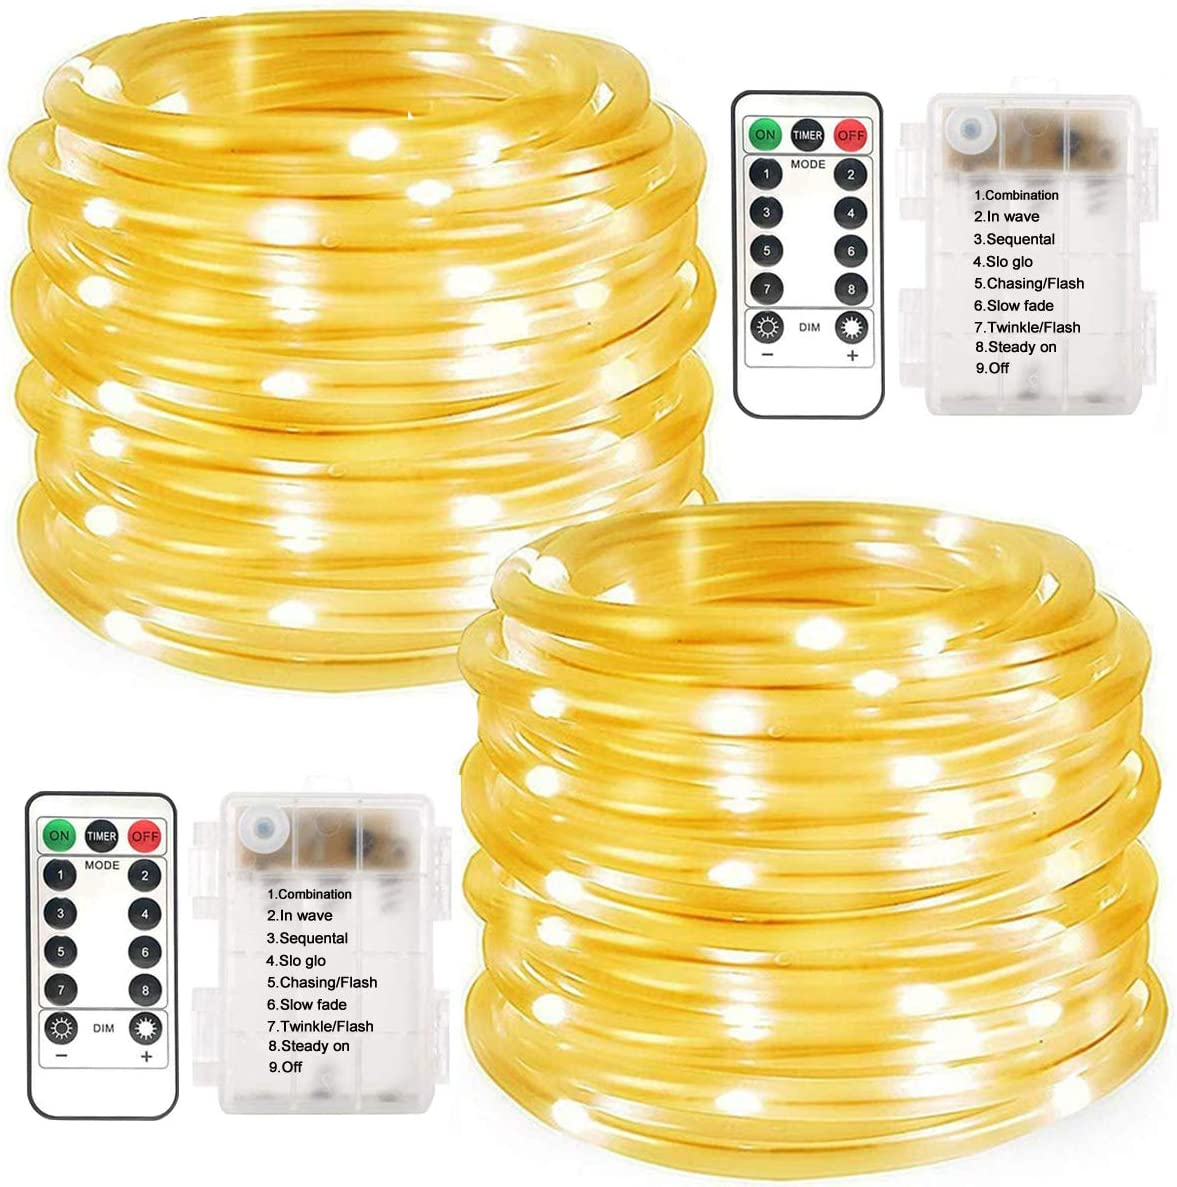 LiyuanQ Battery Operated String Lights, 2 Pack 100 LED Waterproof Rope String Lights Outdoor Fairy PVC Tube Lights 8 Modes 33FT Battery Rope Lights for Garden Party Christmas Decor (Warm White)